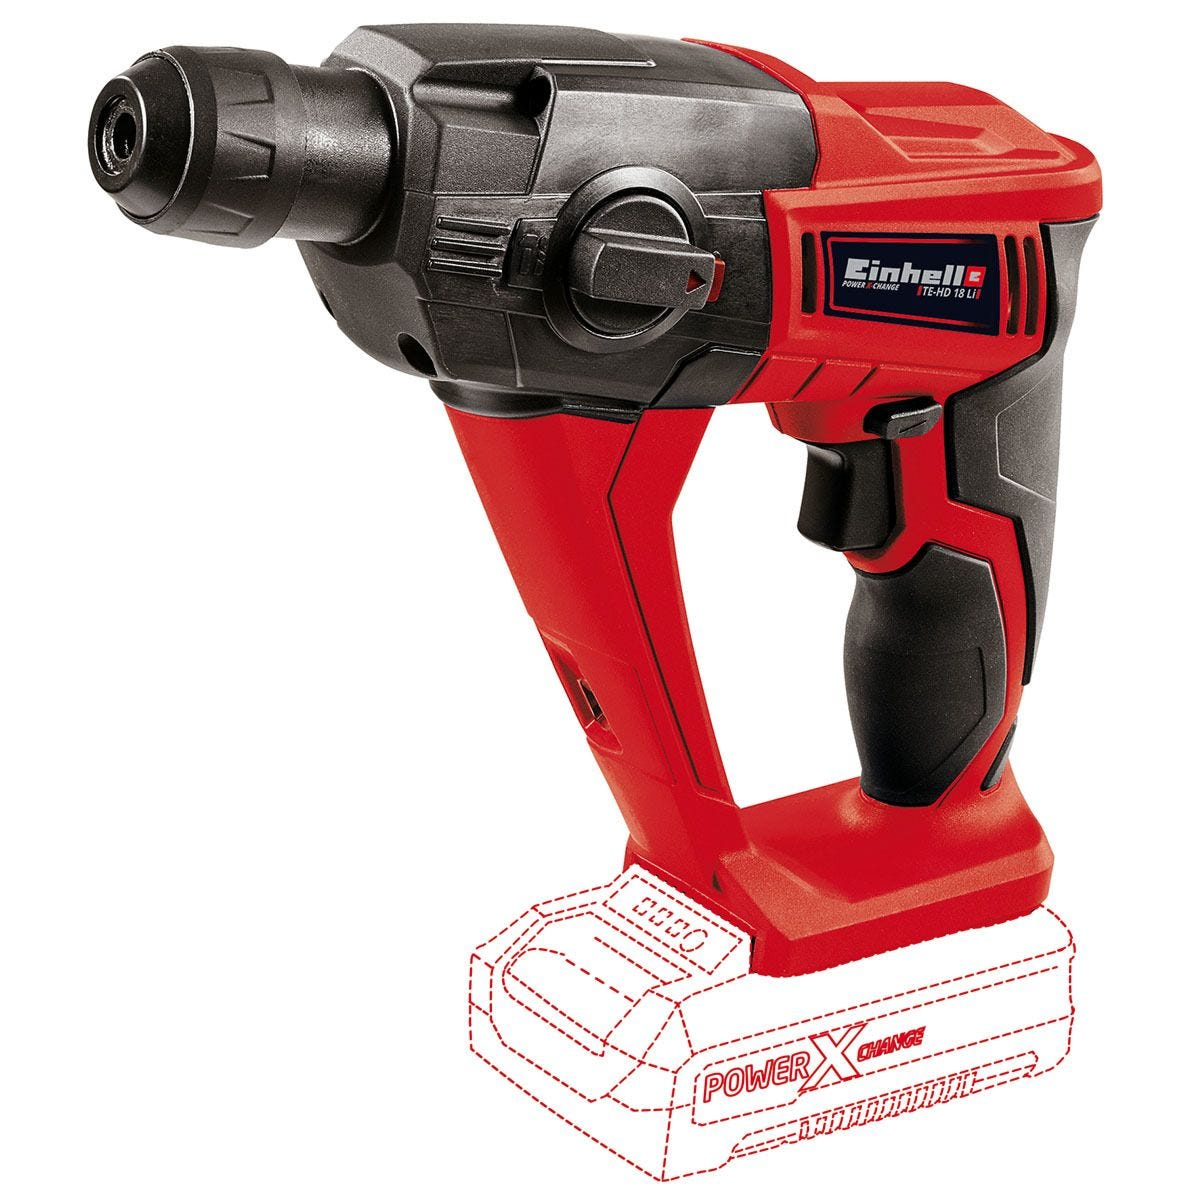 Einhell Power X-Change 18V Cordless Rotary Drill (Bare Unit)